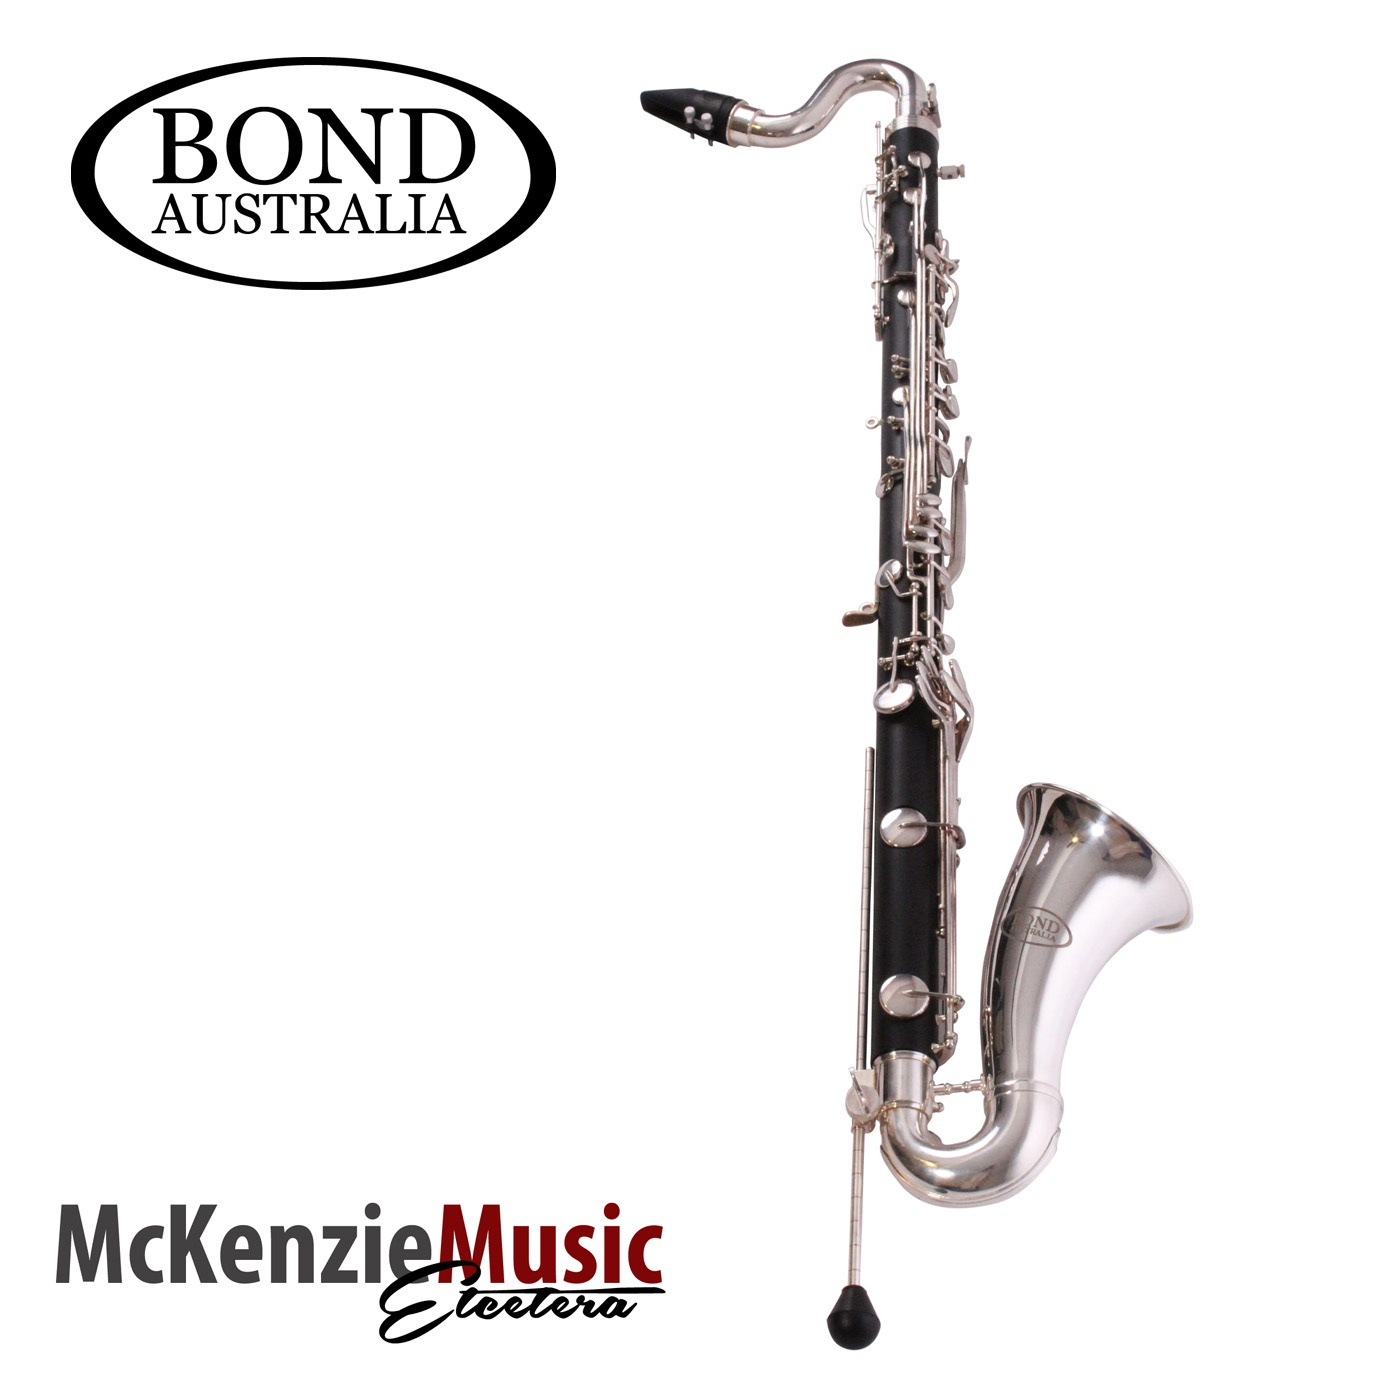 Bond Australia Bass Clarinet